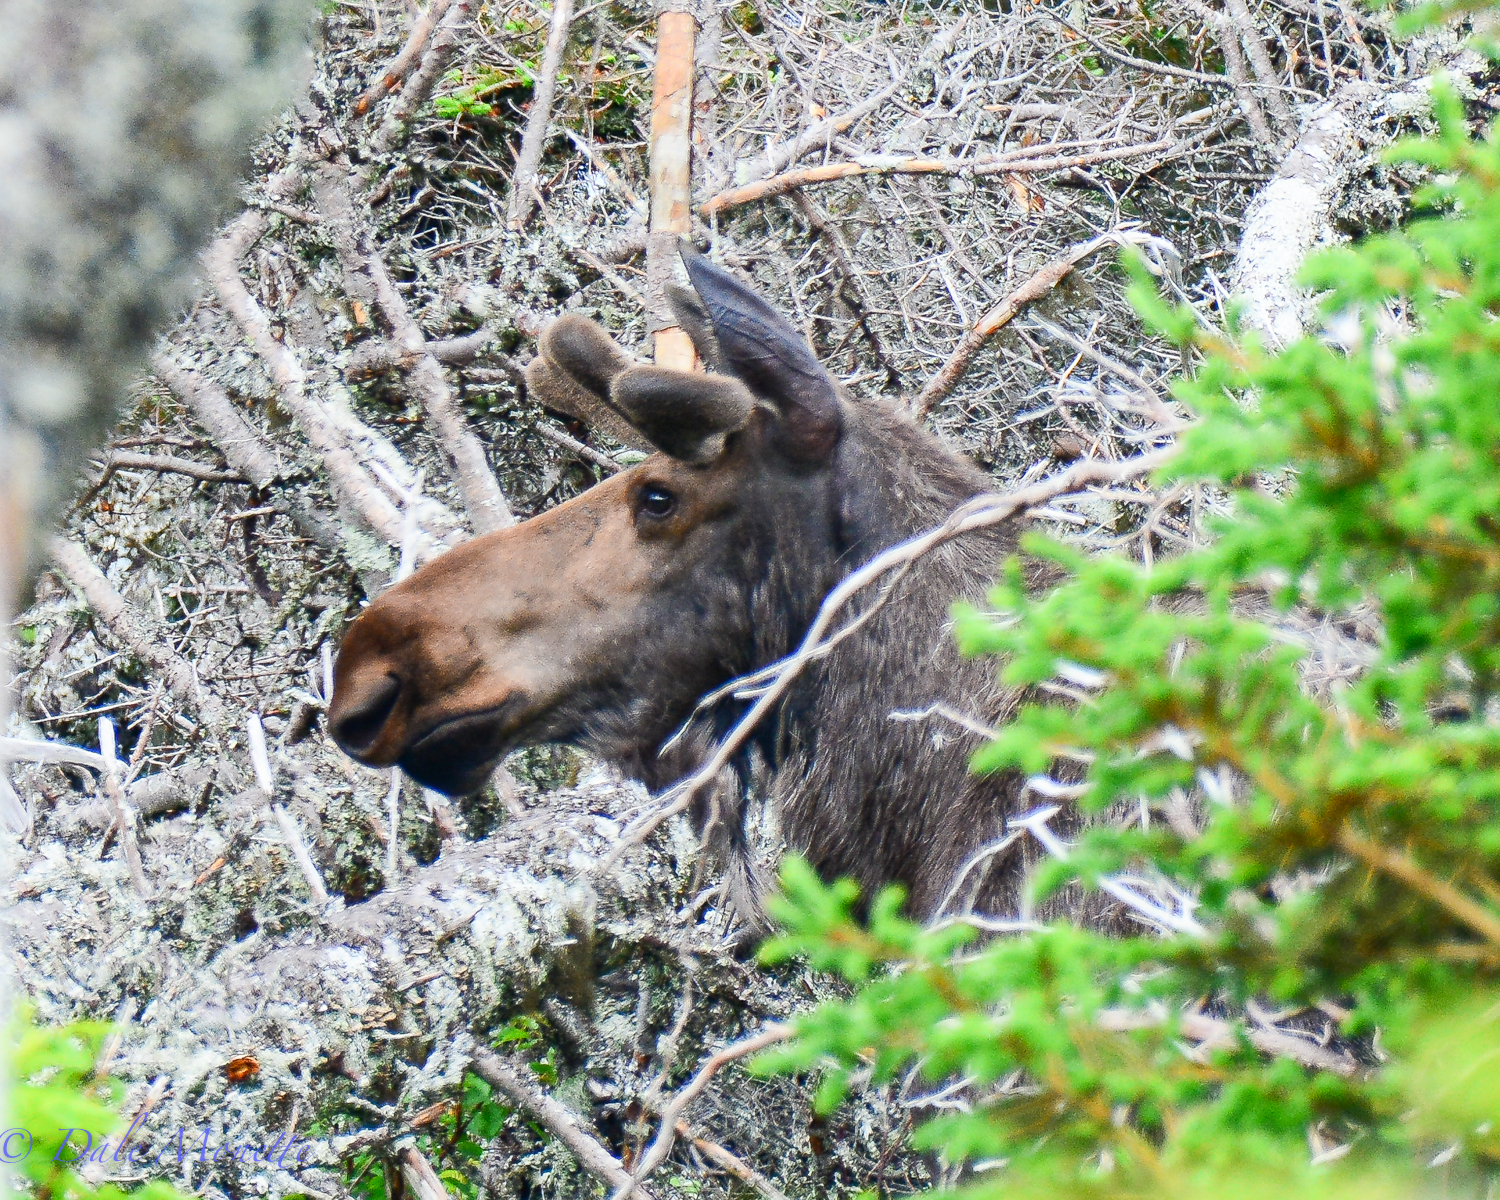 Mid June and the antlers are already growing on the bulls.